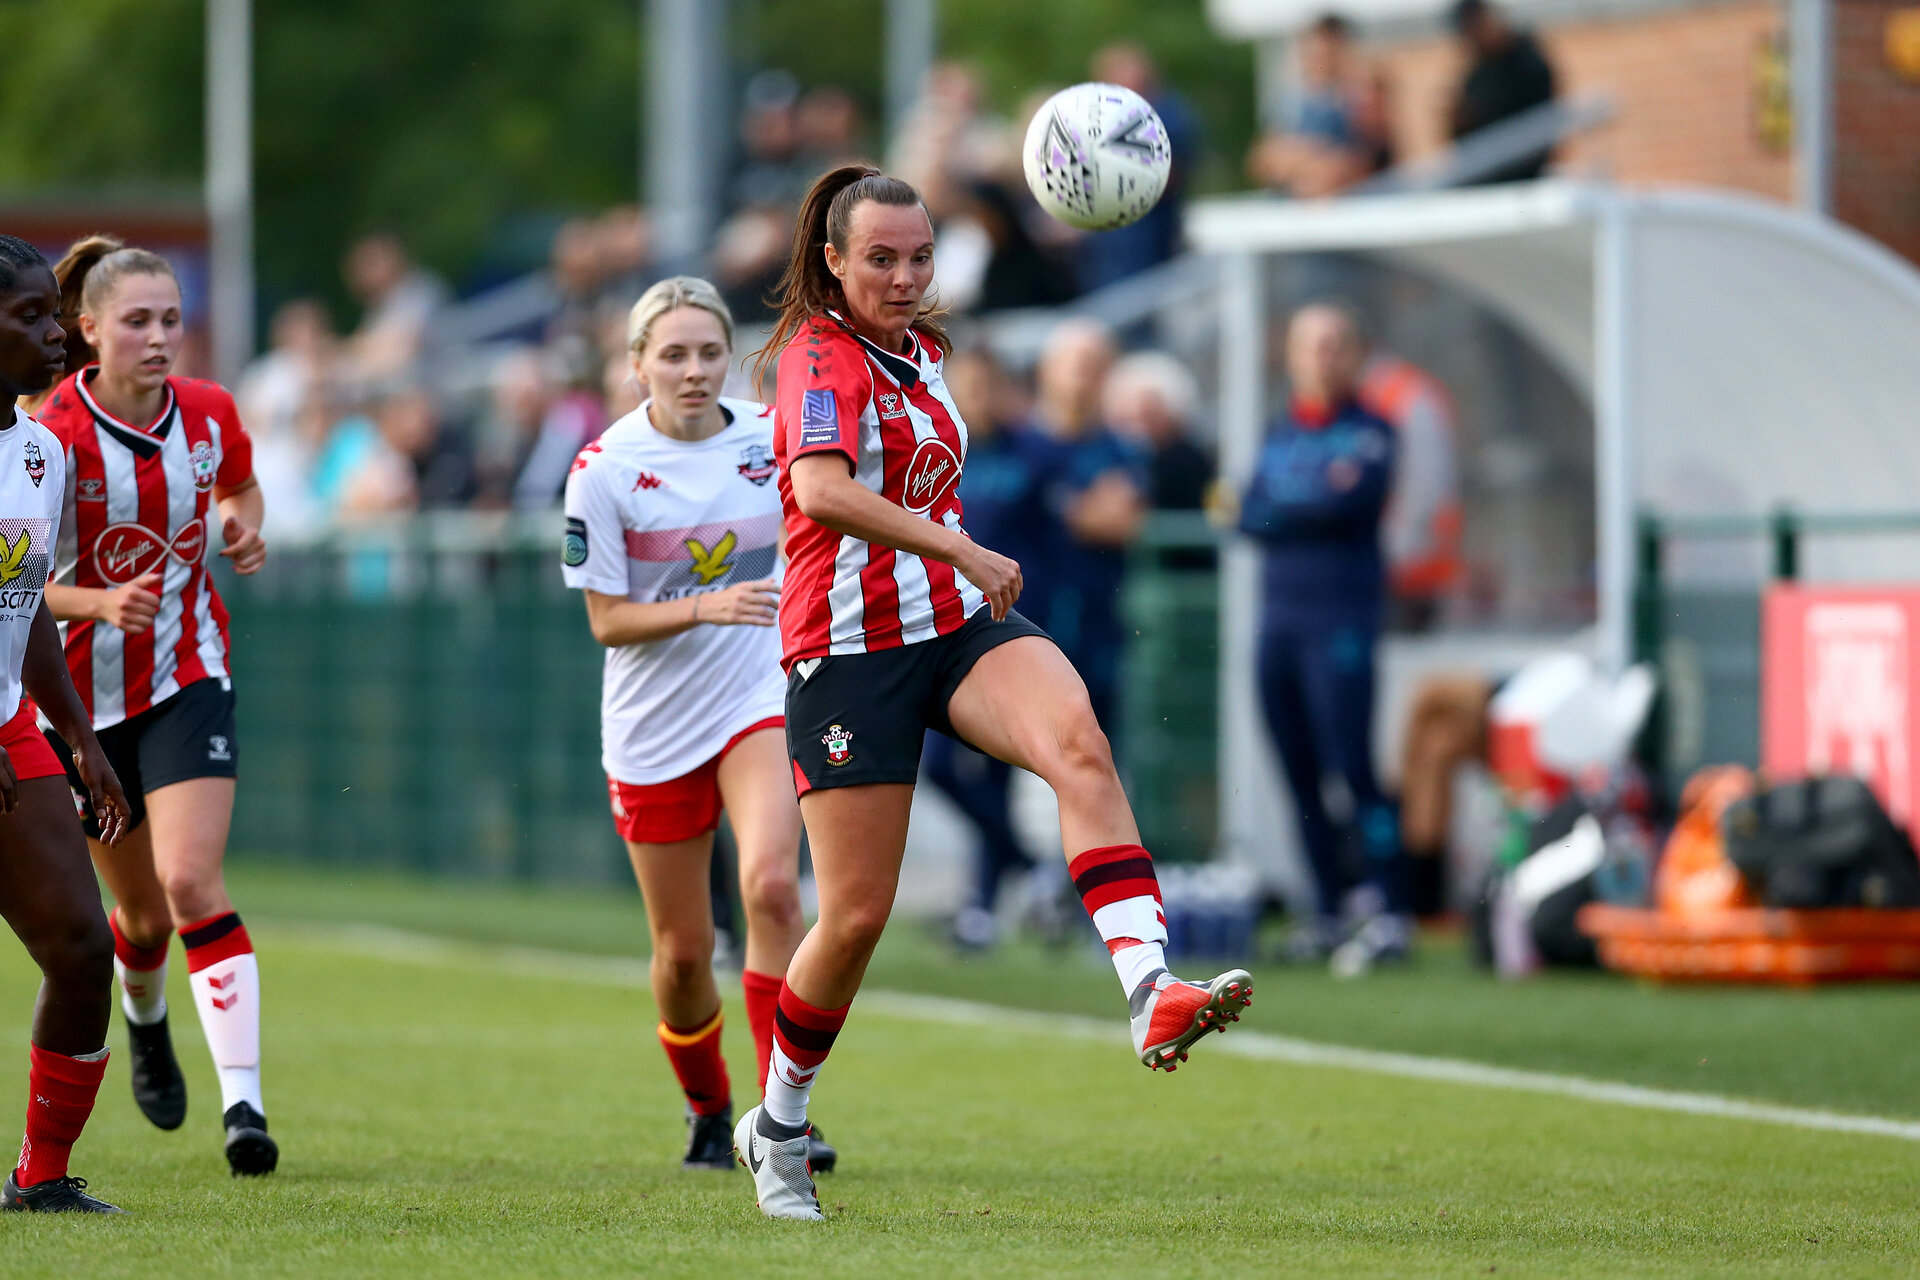 SOUTHAMPTON, ENGLAND - JULY 29: Leeta Rutherford of Southampton during pre season friendly match between Southampton Women's Team and Lewes FC at Snows Stadium on July 29, 2021 in Southampton, England. (Photo by Isabelle Field/Southampton FC via Getty Images)